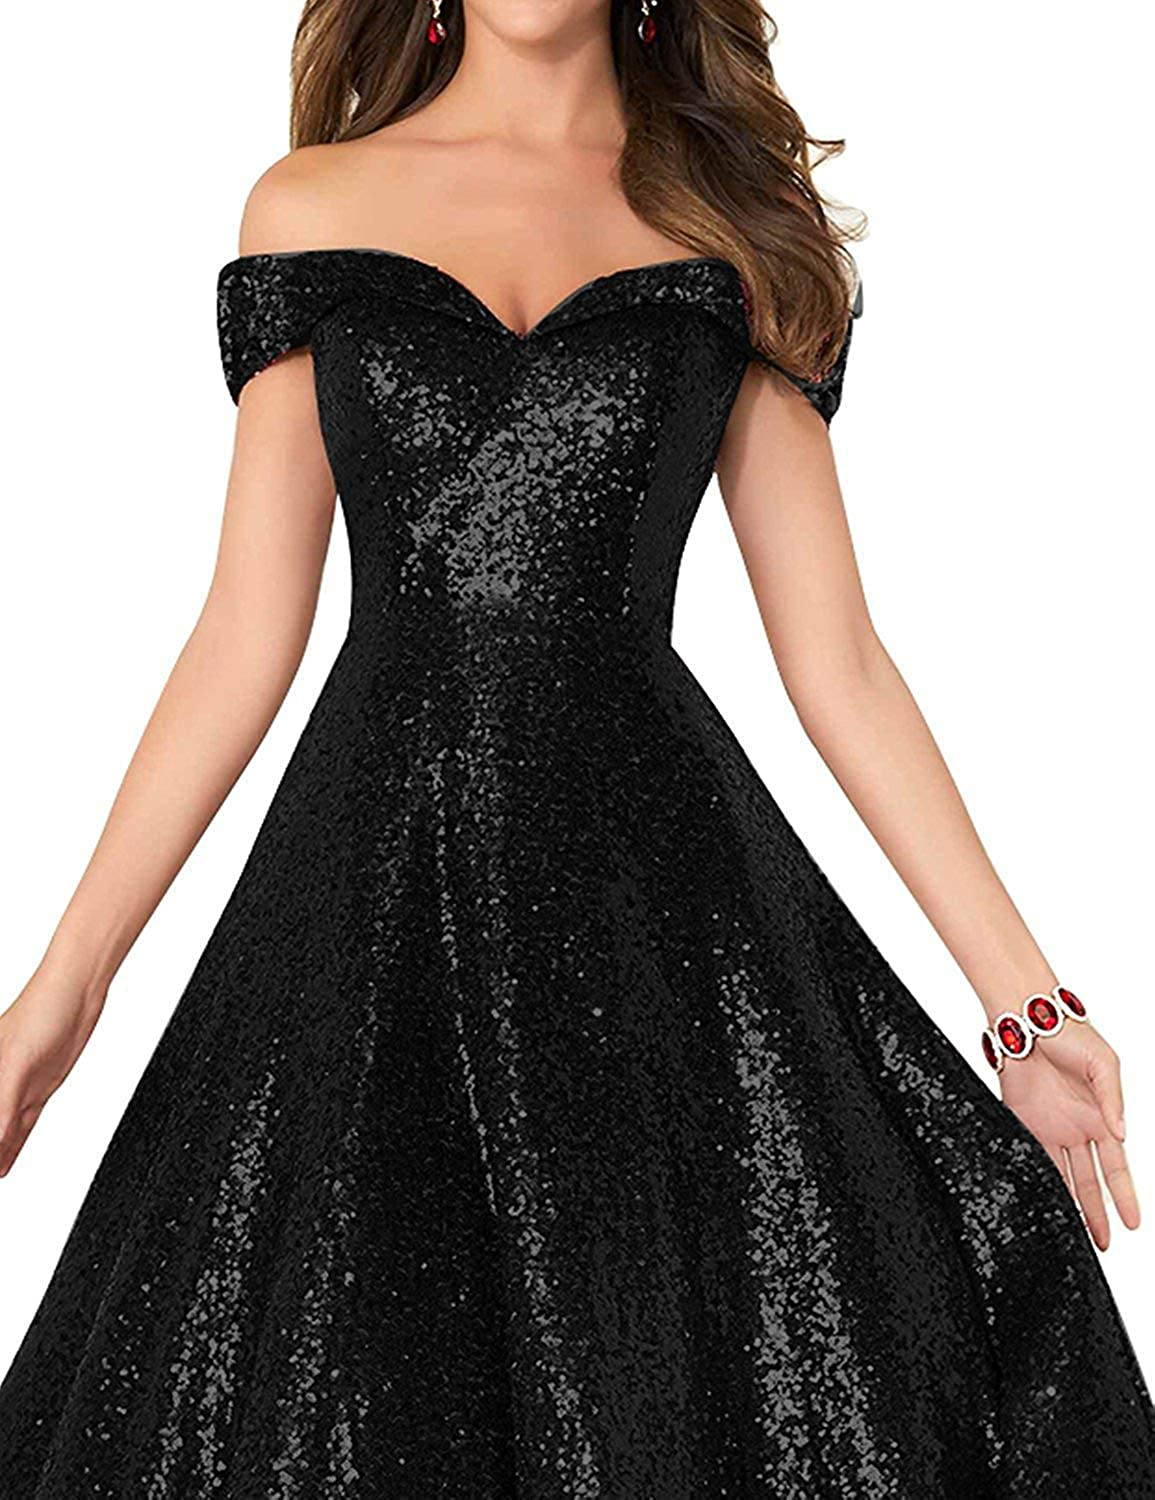 bac5f763c212d Amazon.com: Elinadress Women's Long Off Shoulder Prom Dress 2019 Sparkly  Sequins Evening Party Ball Gown 140: Clothing